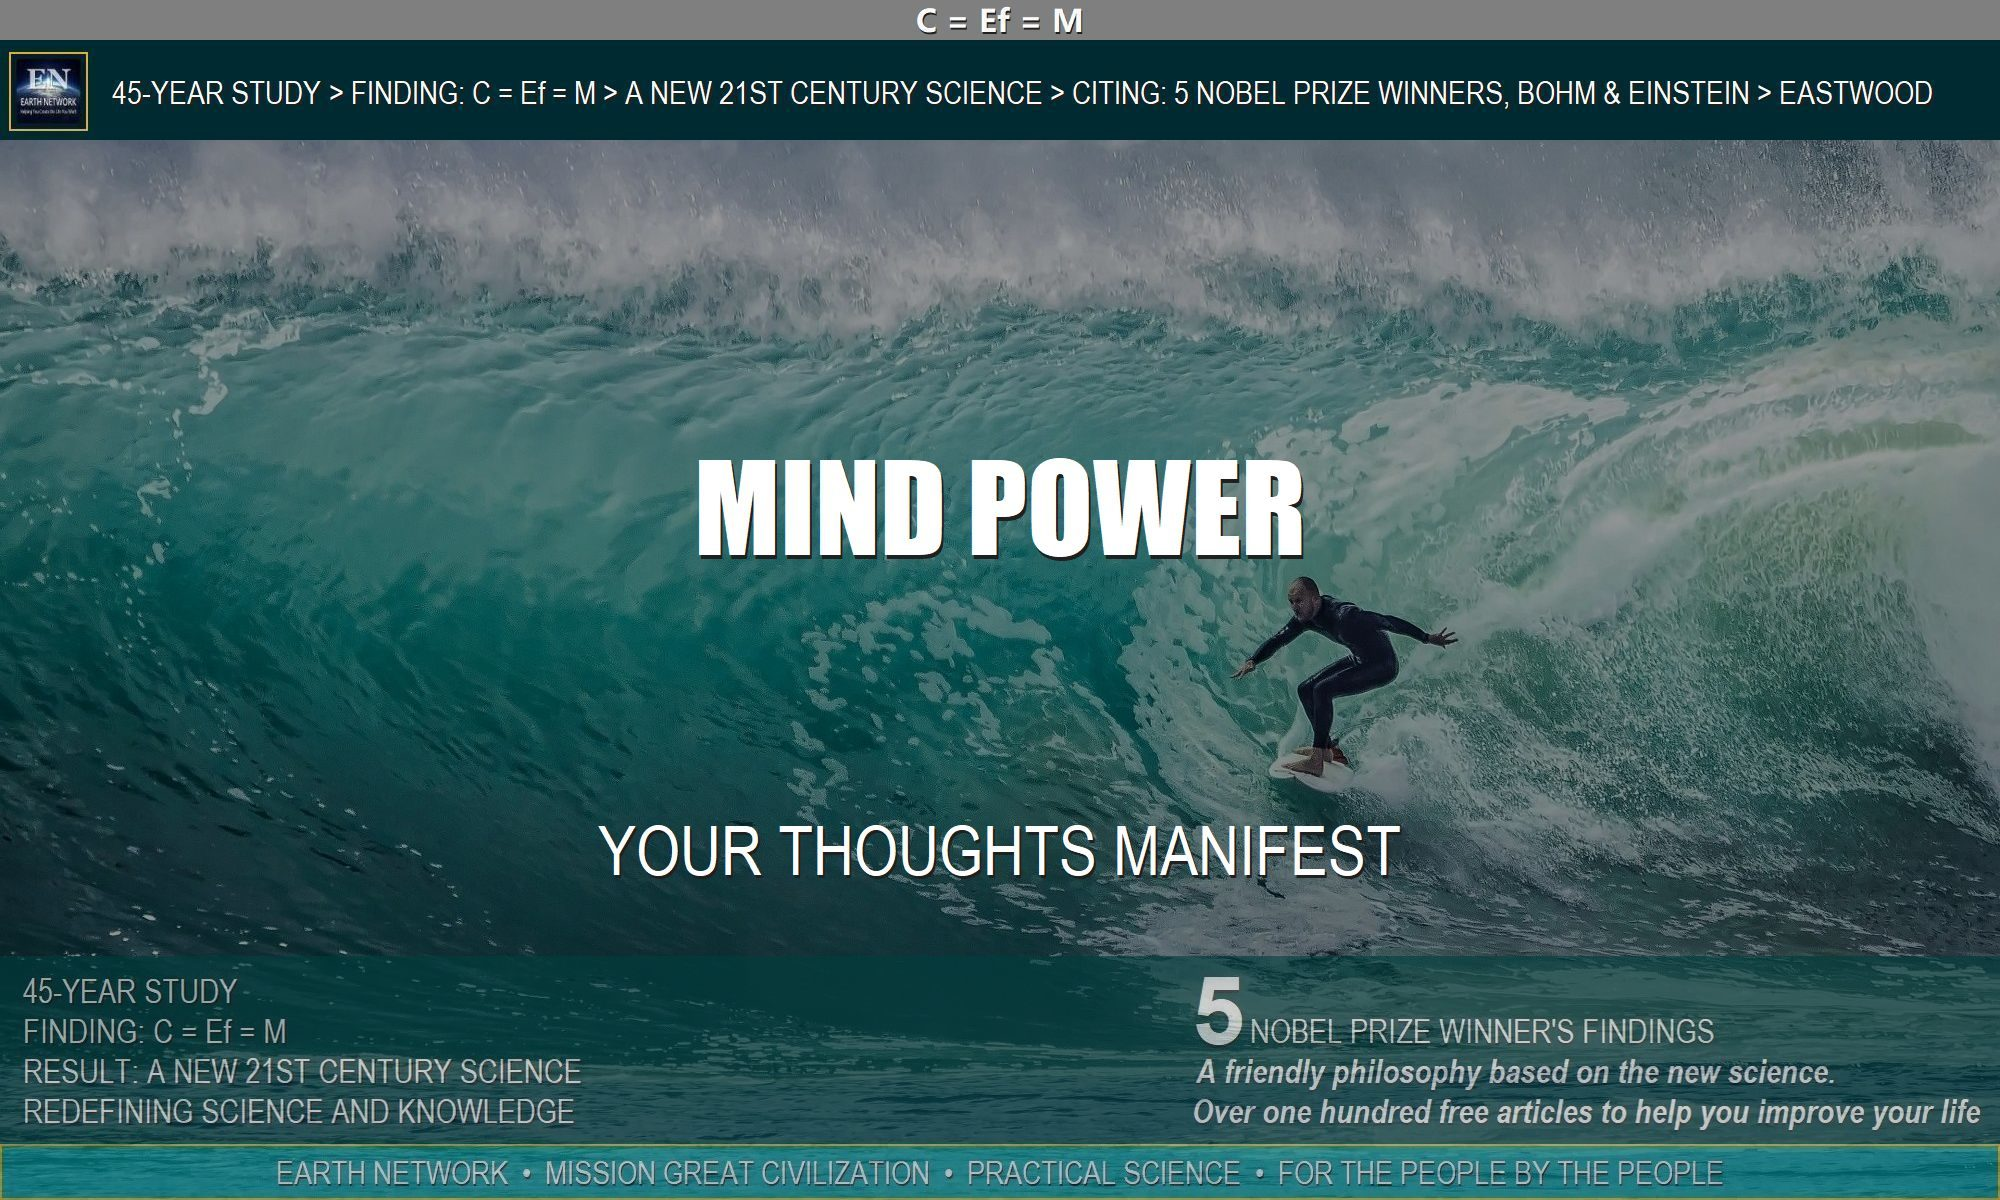 What is the power of the mind? Man surfing giant wave manifested the experience with his thoughts.